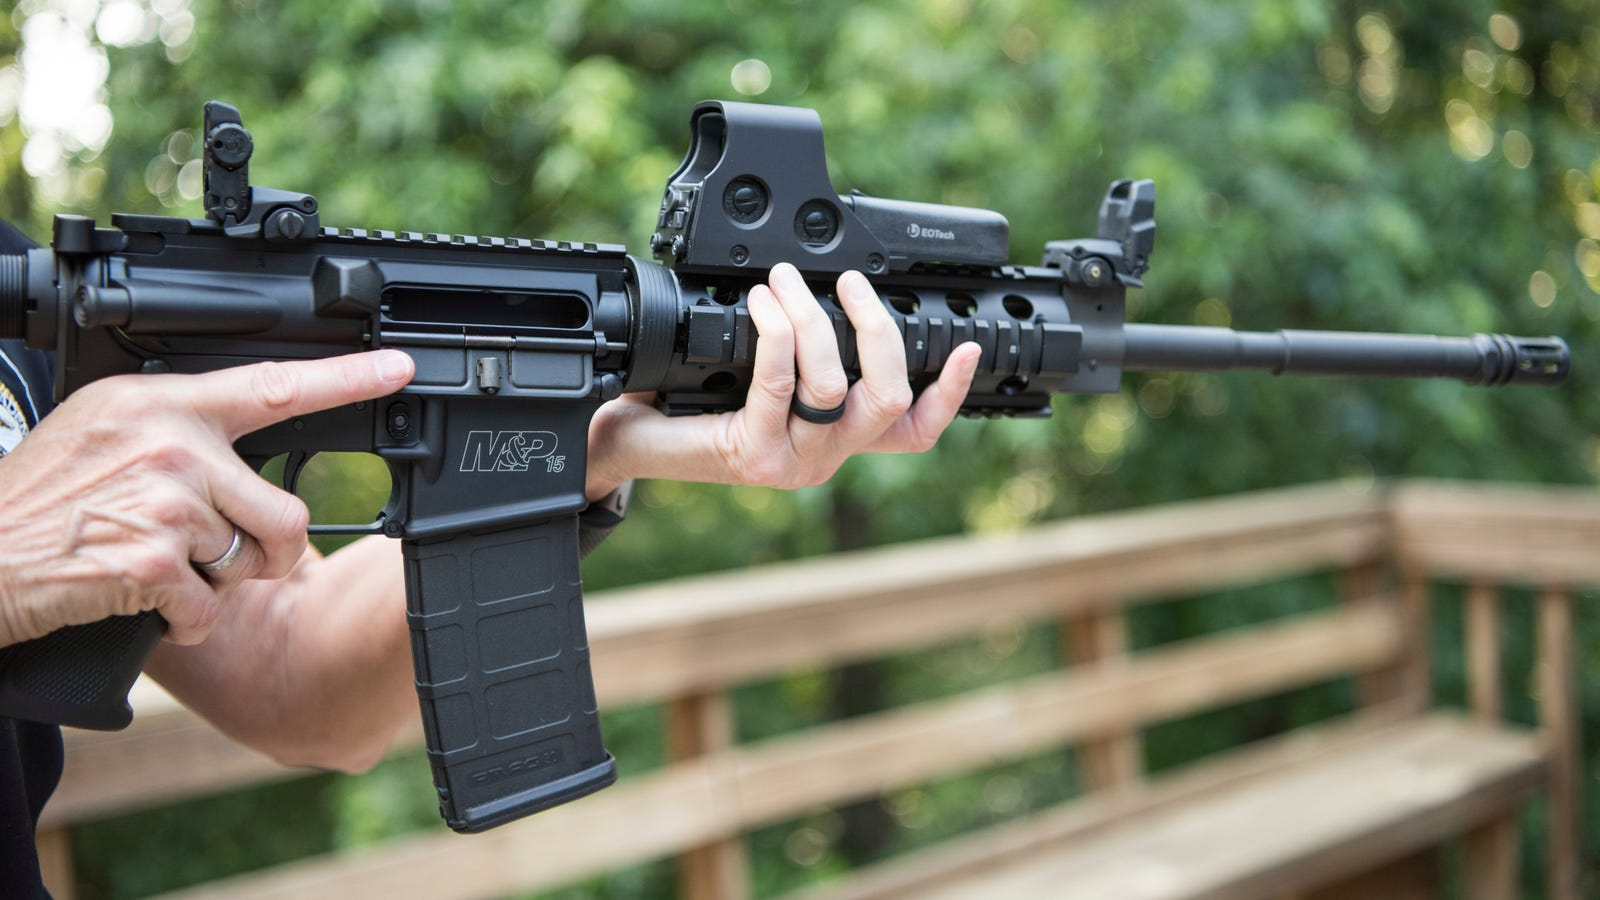 Man Arrested For Instagram Post of AR-15 Captioned 'Thinking About Finally Going Back to School'